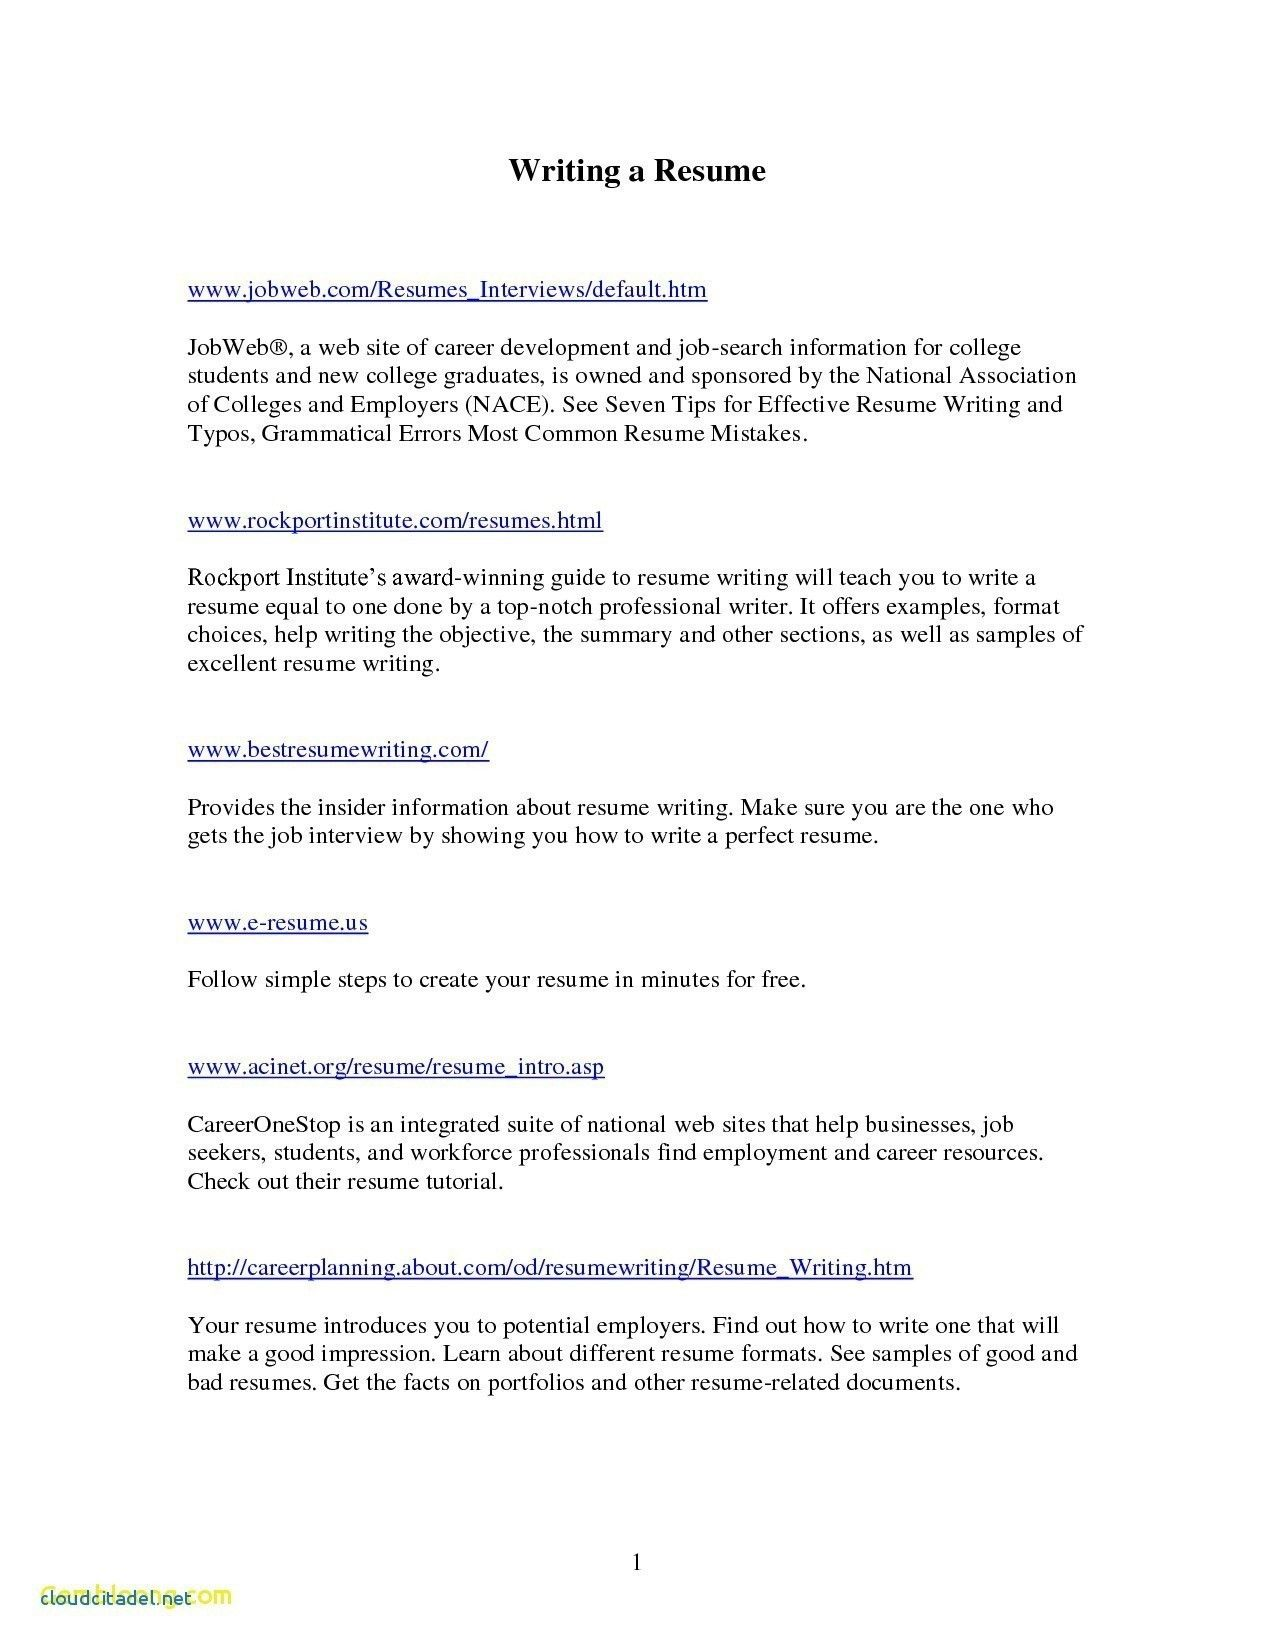 Download Unique Letter Of Intention For Job Application Lettersample Letterformat Resumesample Resumeformat Job Application Job Cover Letter